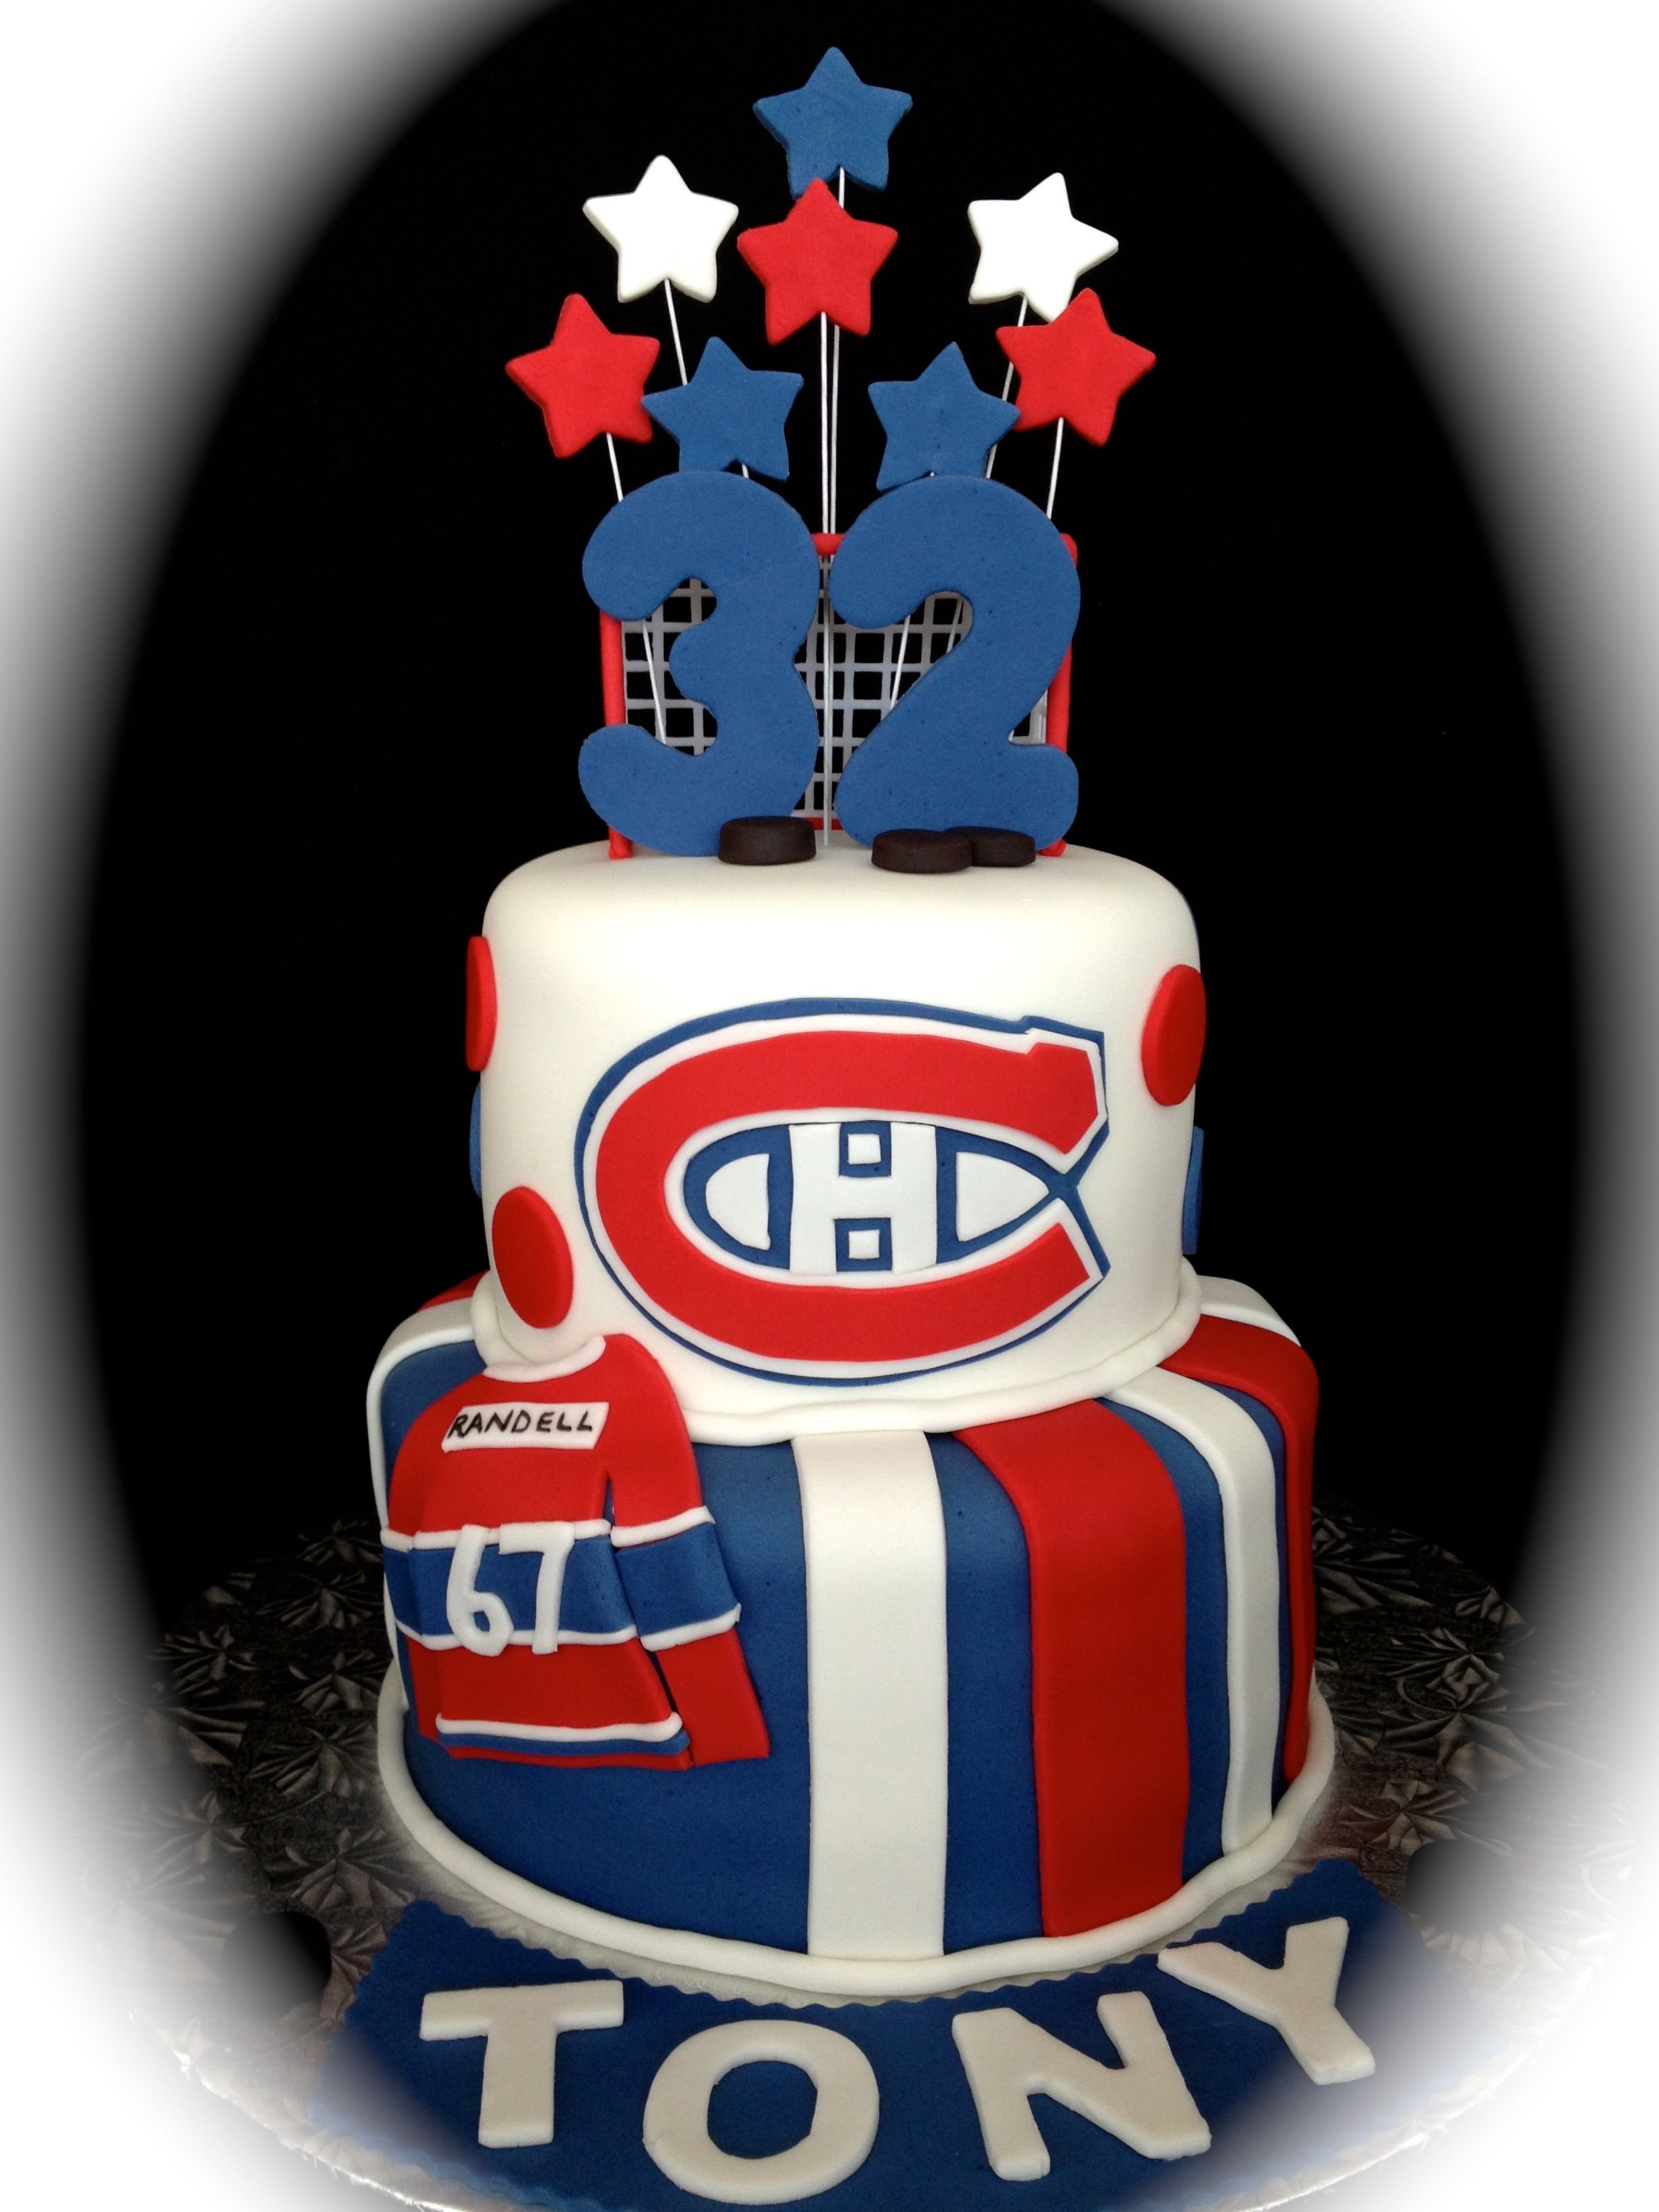 Montreal Canadiens Hockey Cake My style Pinterest Hockey cakes